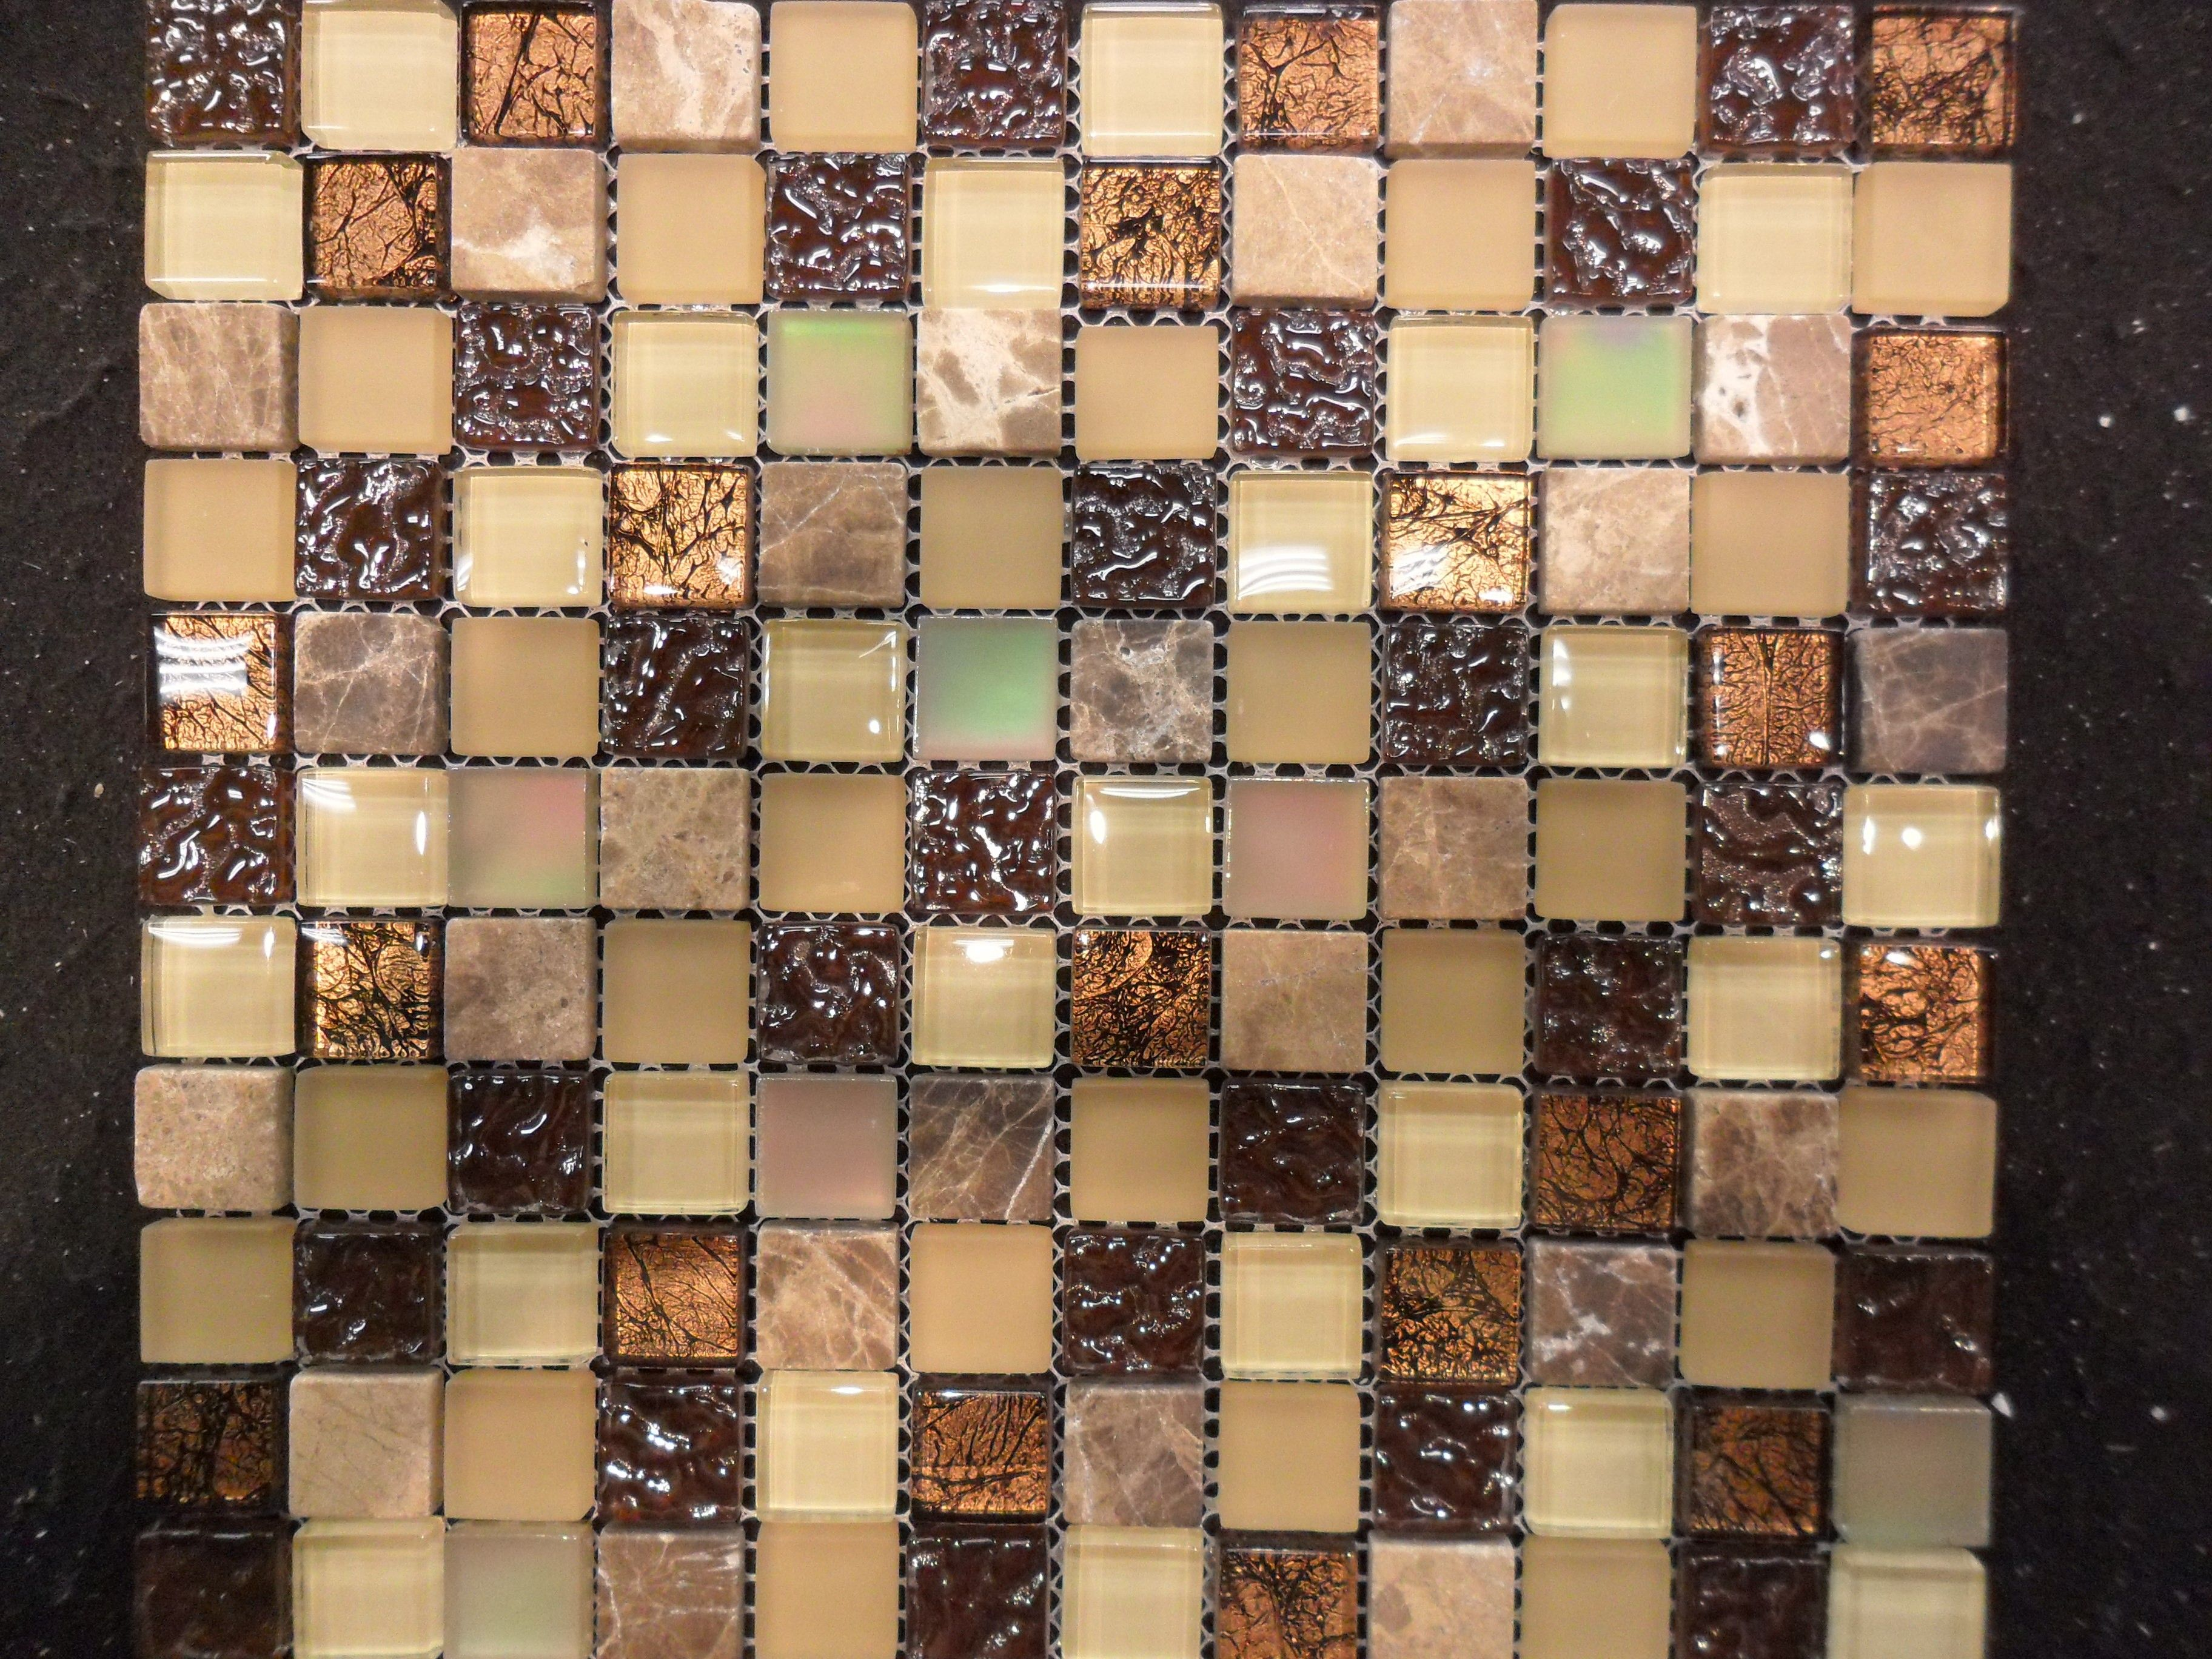 1X1 Glass Tile Stone Mix Copper Look Mosaic Tile Backsplash